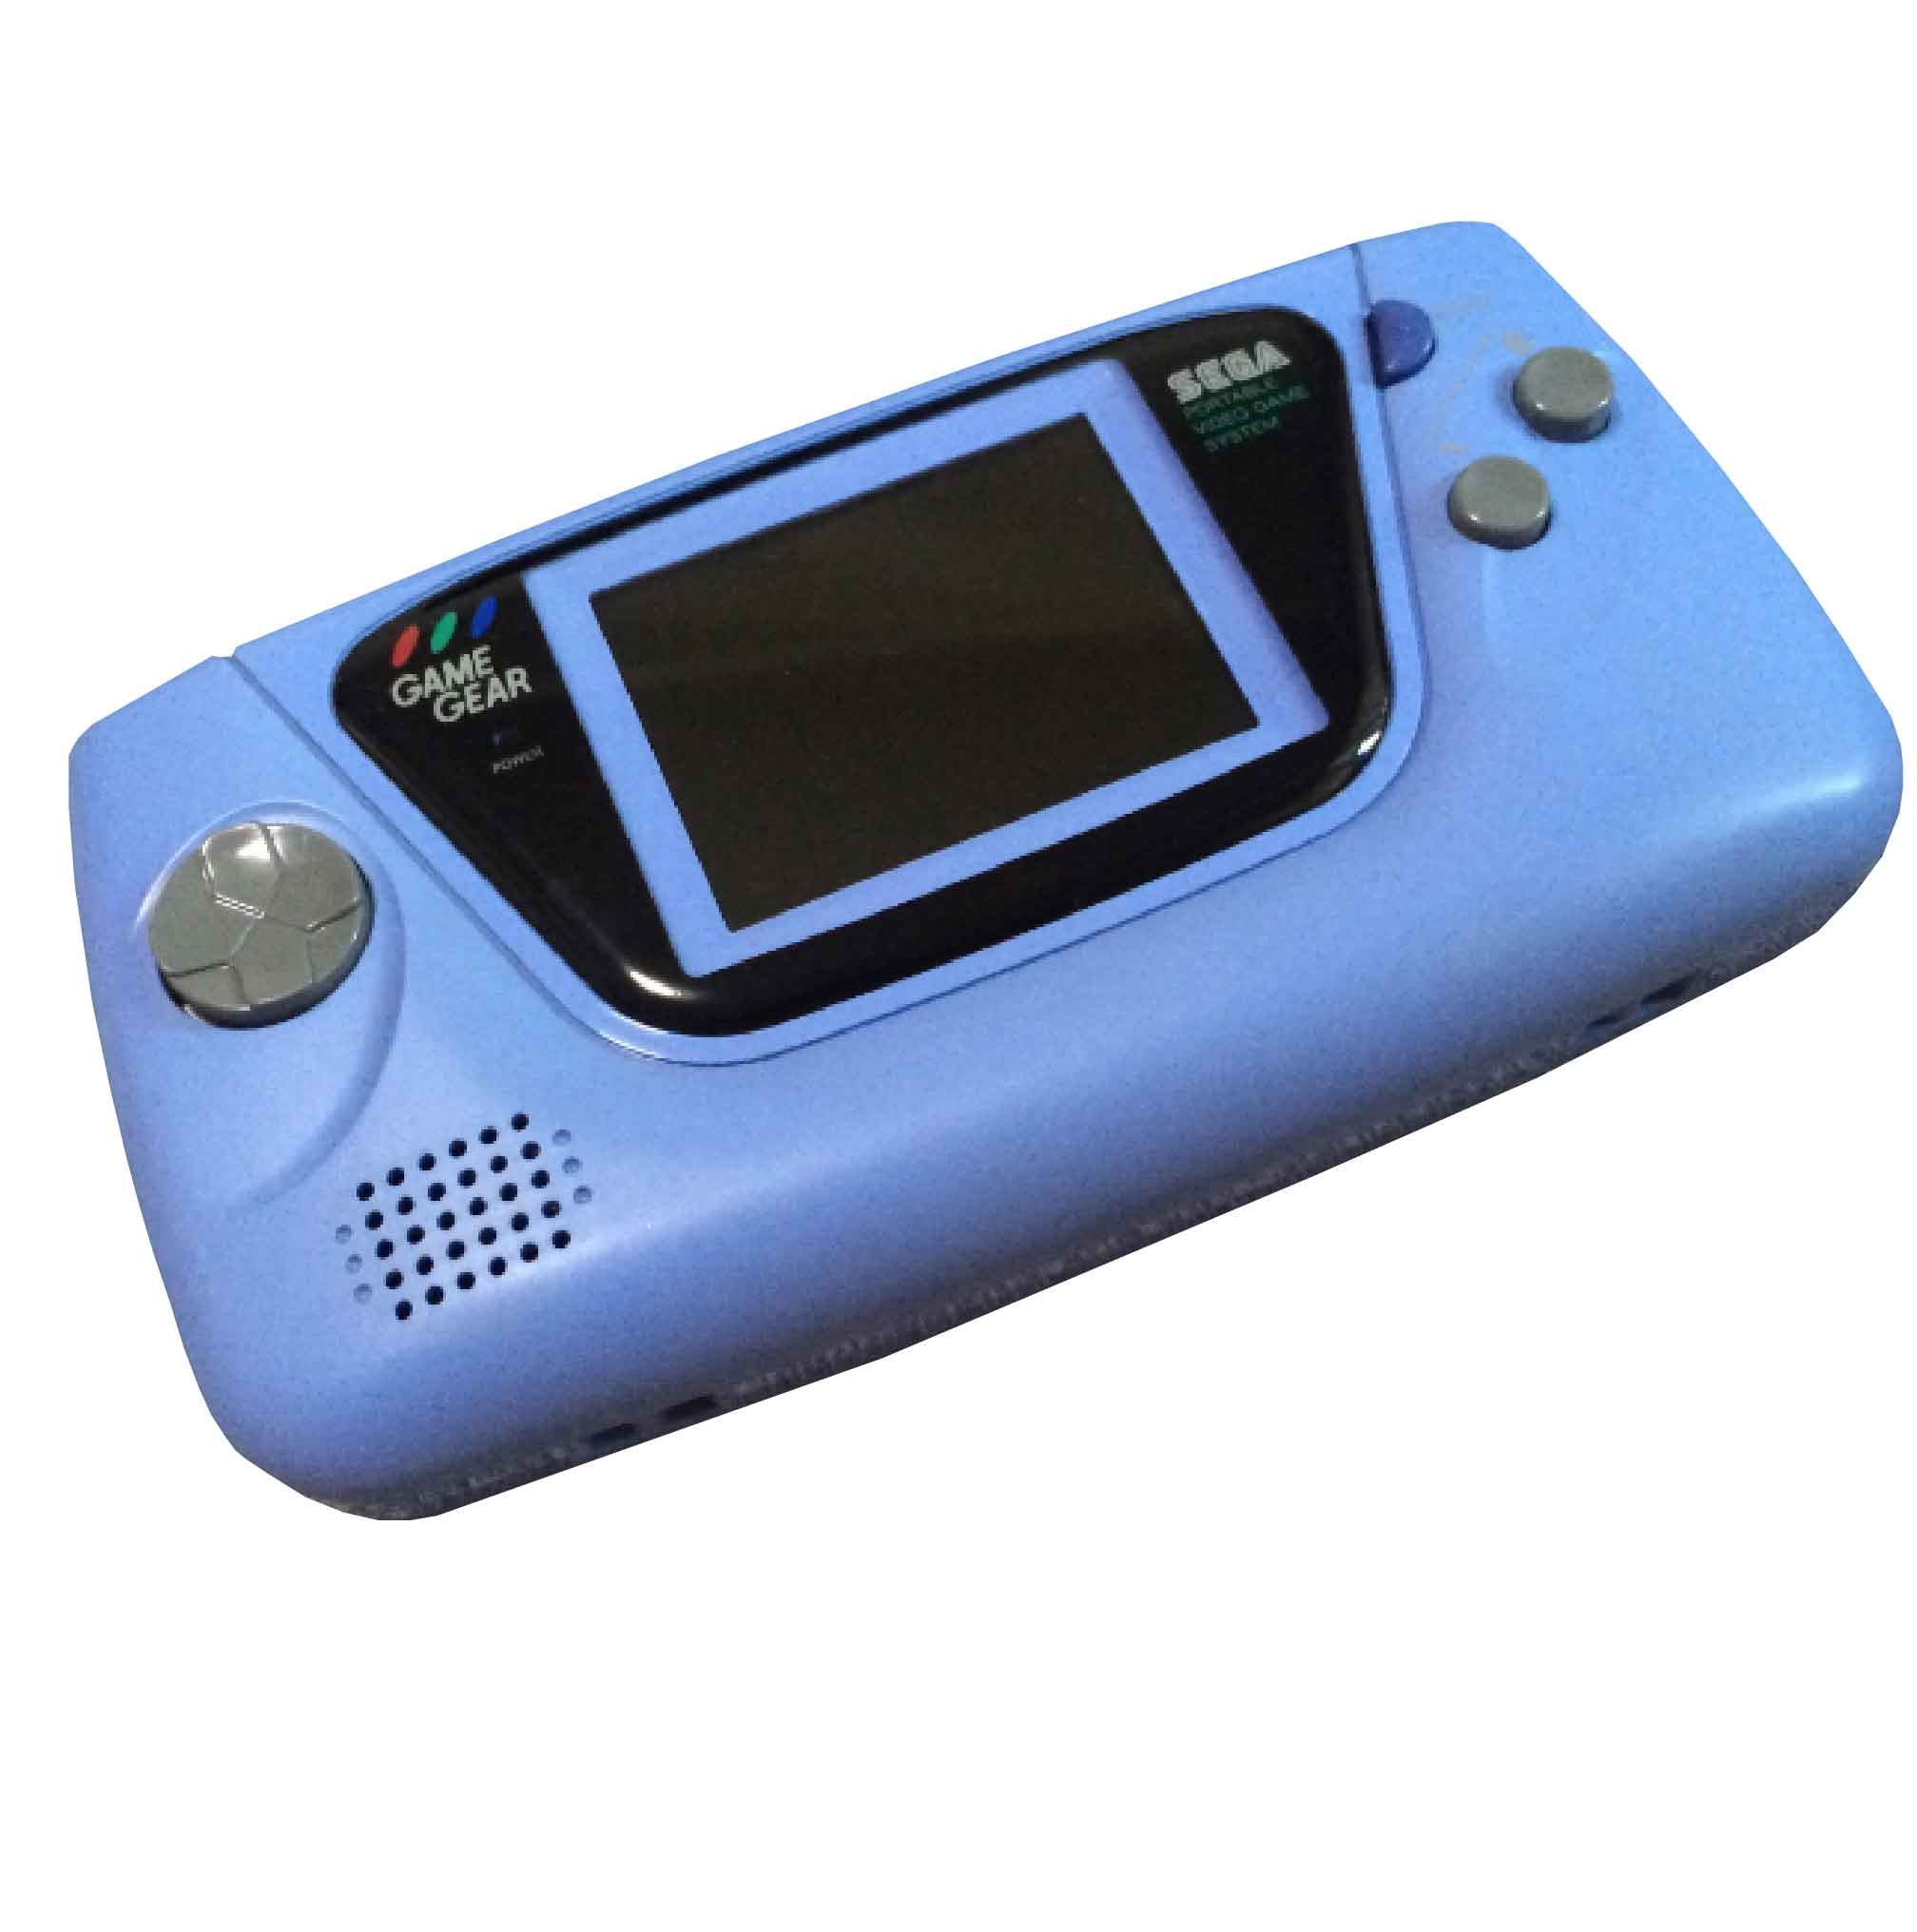 Sega Game Gear Blue LIMITED EDITION